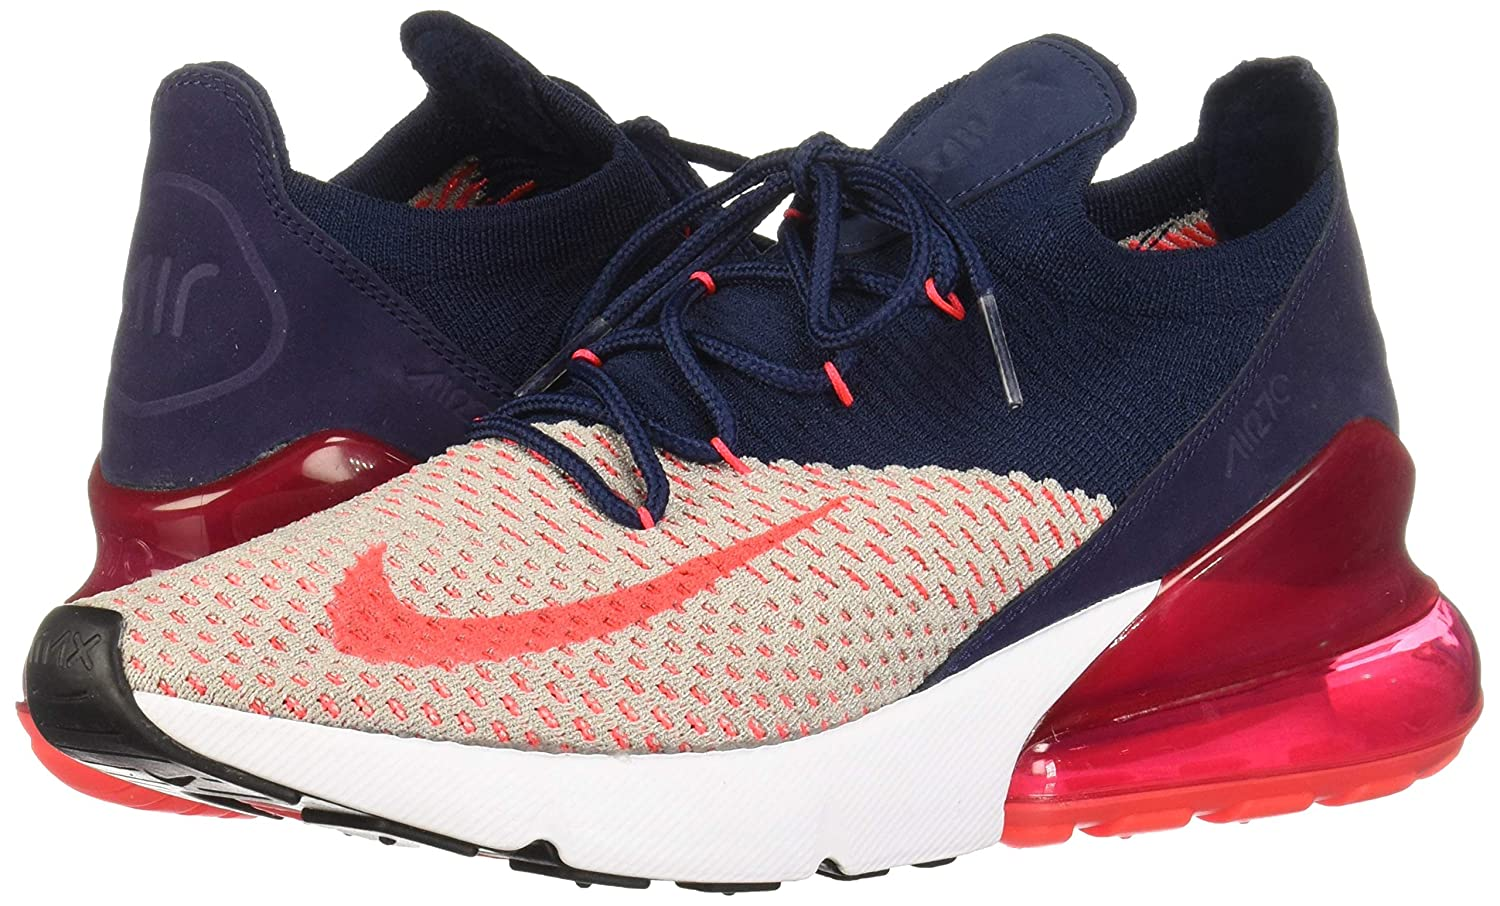 Nike Air Max 270 Flyknit Women S 10 Moon Particle Red Orbit College Navy Blue White